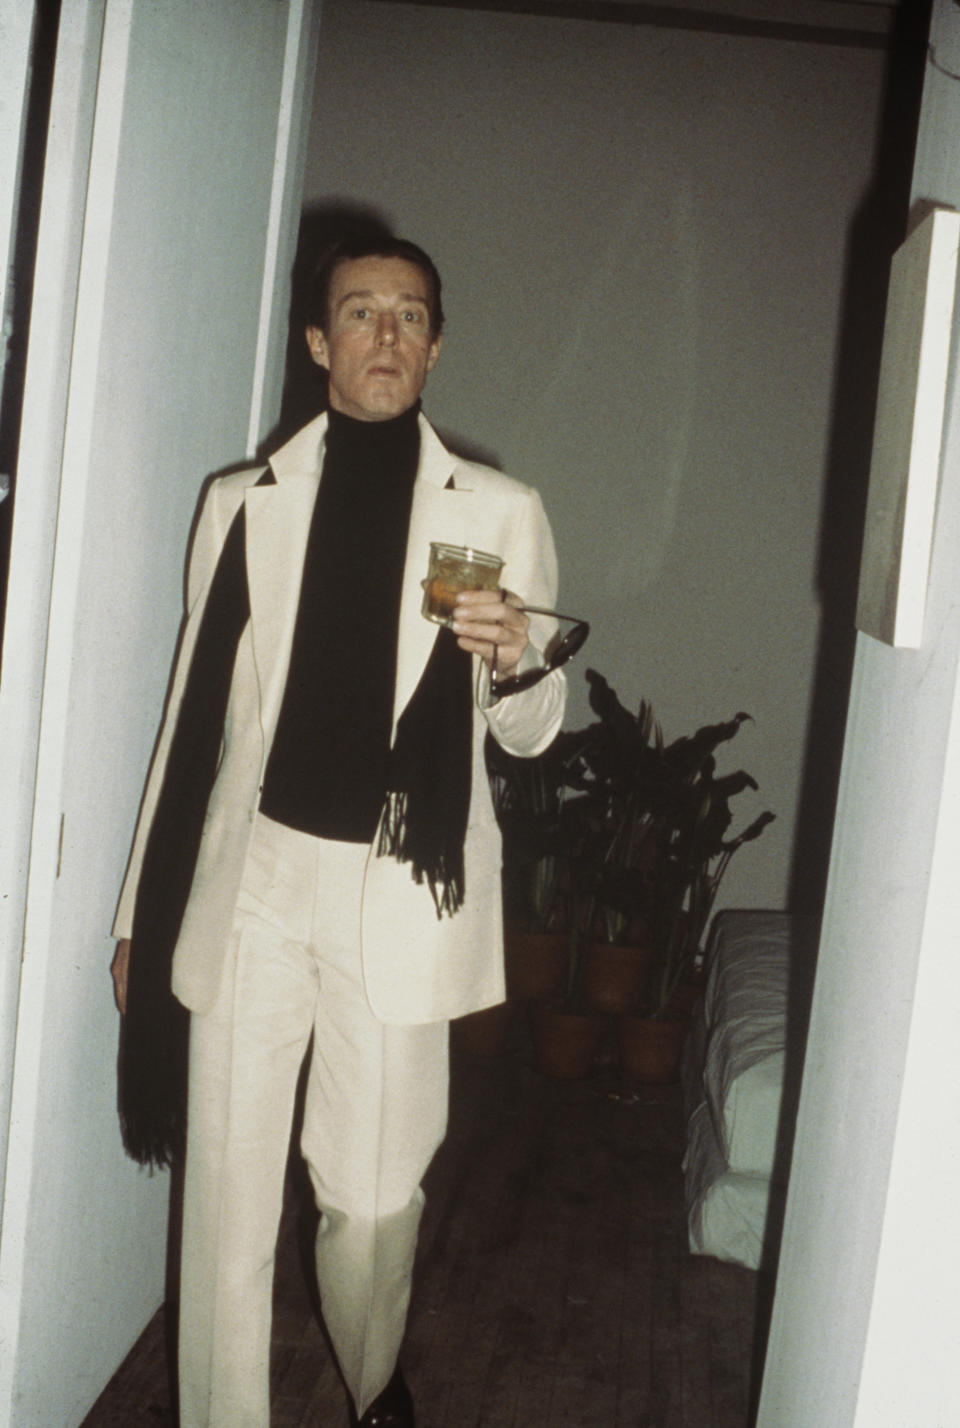 Halston (Roy Halston Frowick) (1932 – 1990), 1979. (Photo by Rose Hartman/Getty Images)